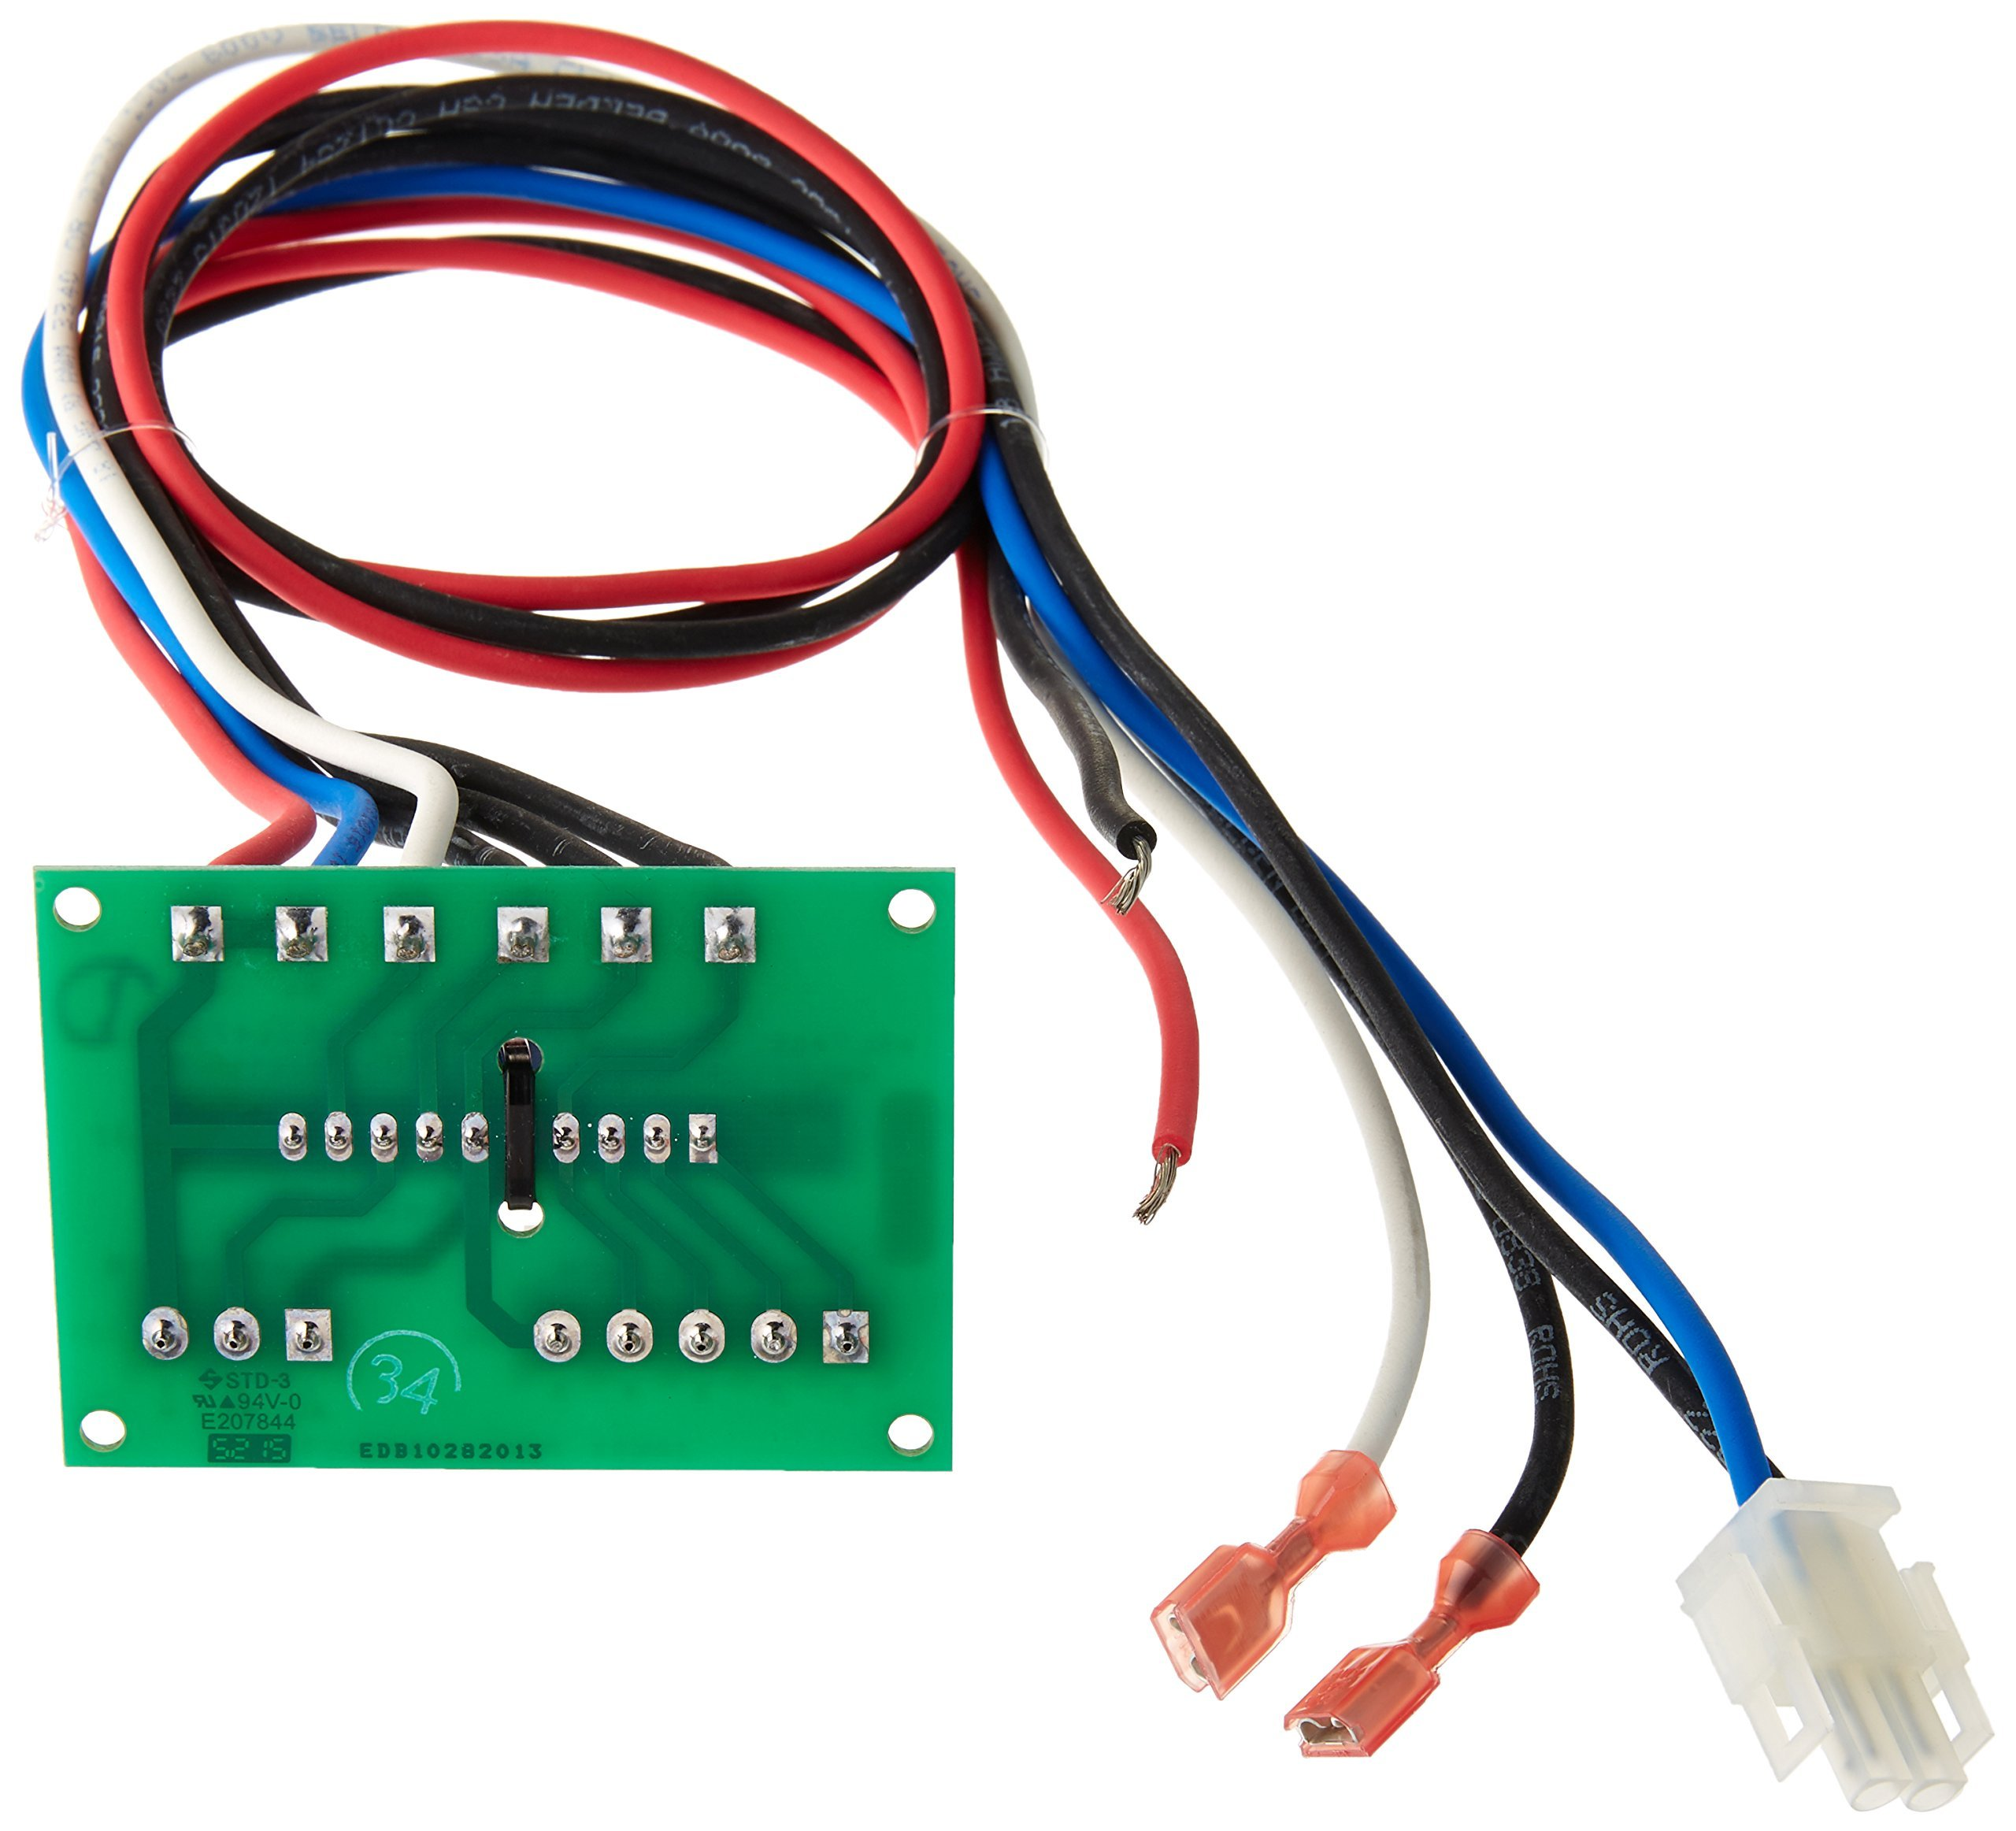 Zodiac R0458100 Power Distribution Circuit Board Replacement for Zodiac Jandy LXi Low NOx Pool and Spa Heaters